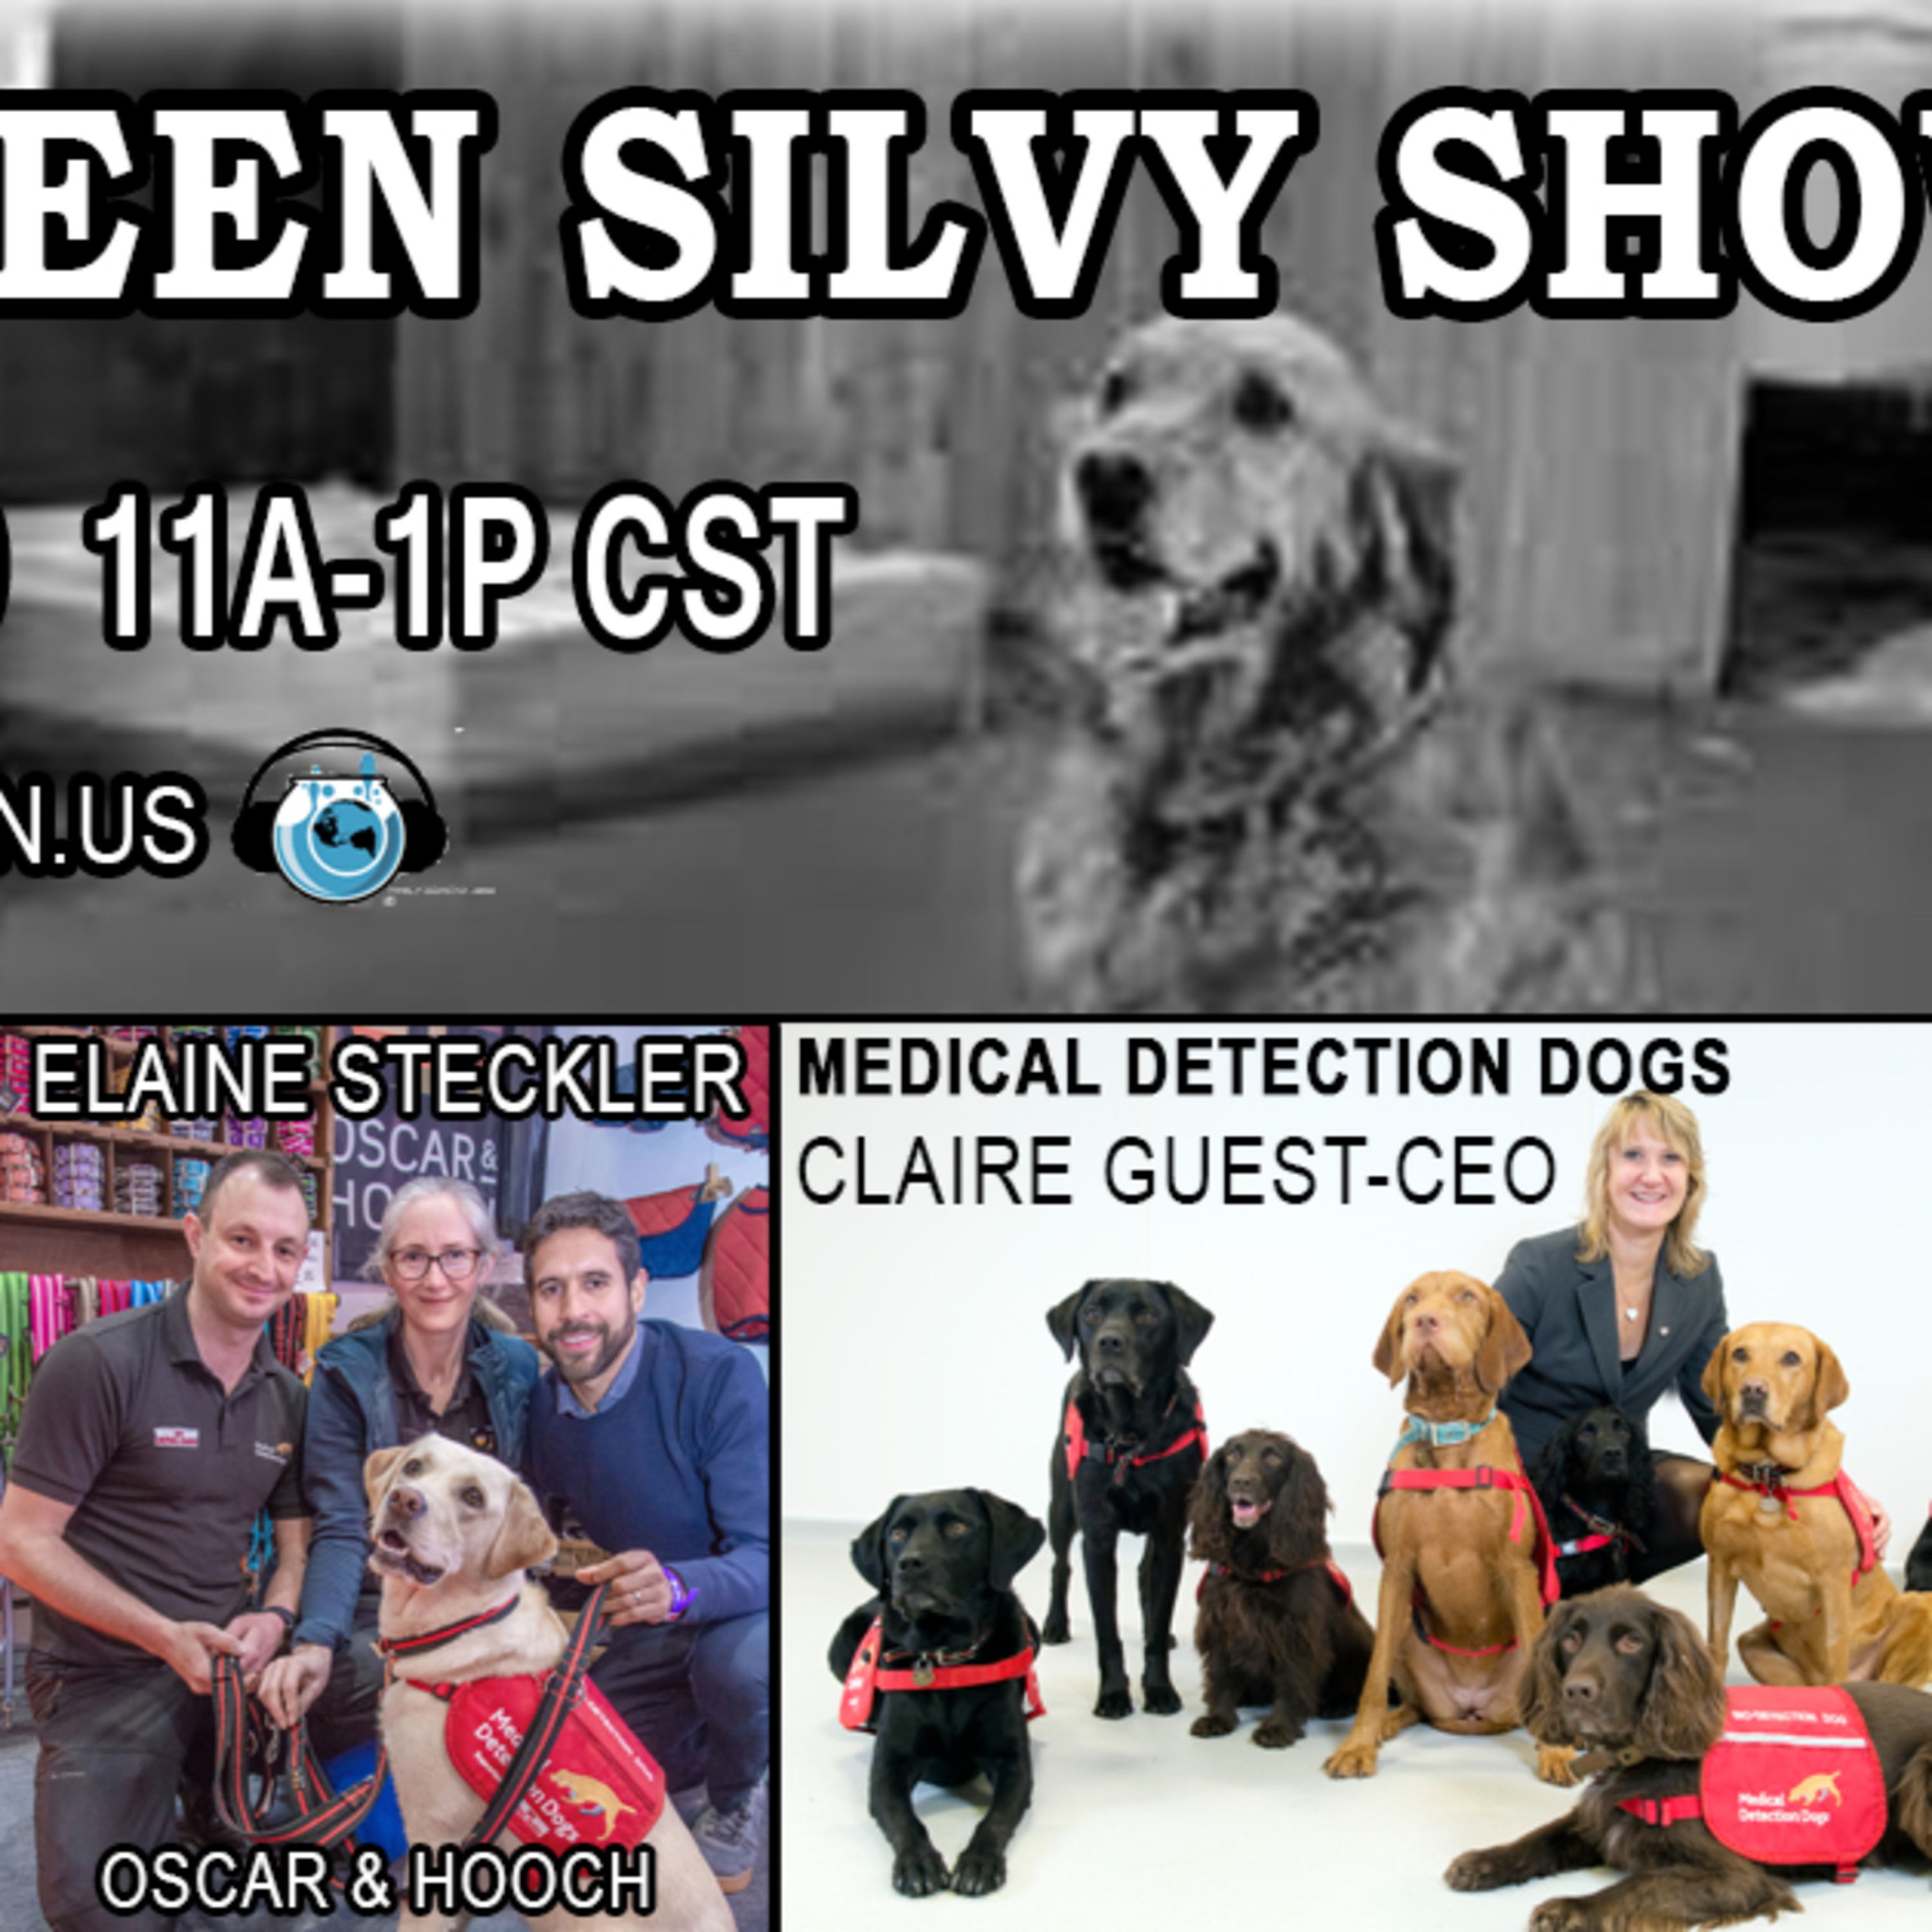 The Queen Silvy Show - July 30 2019